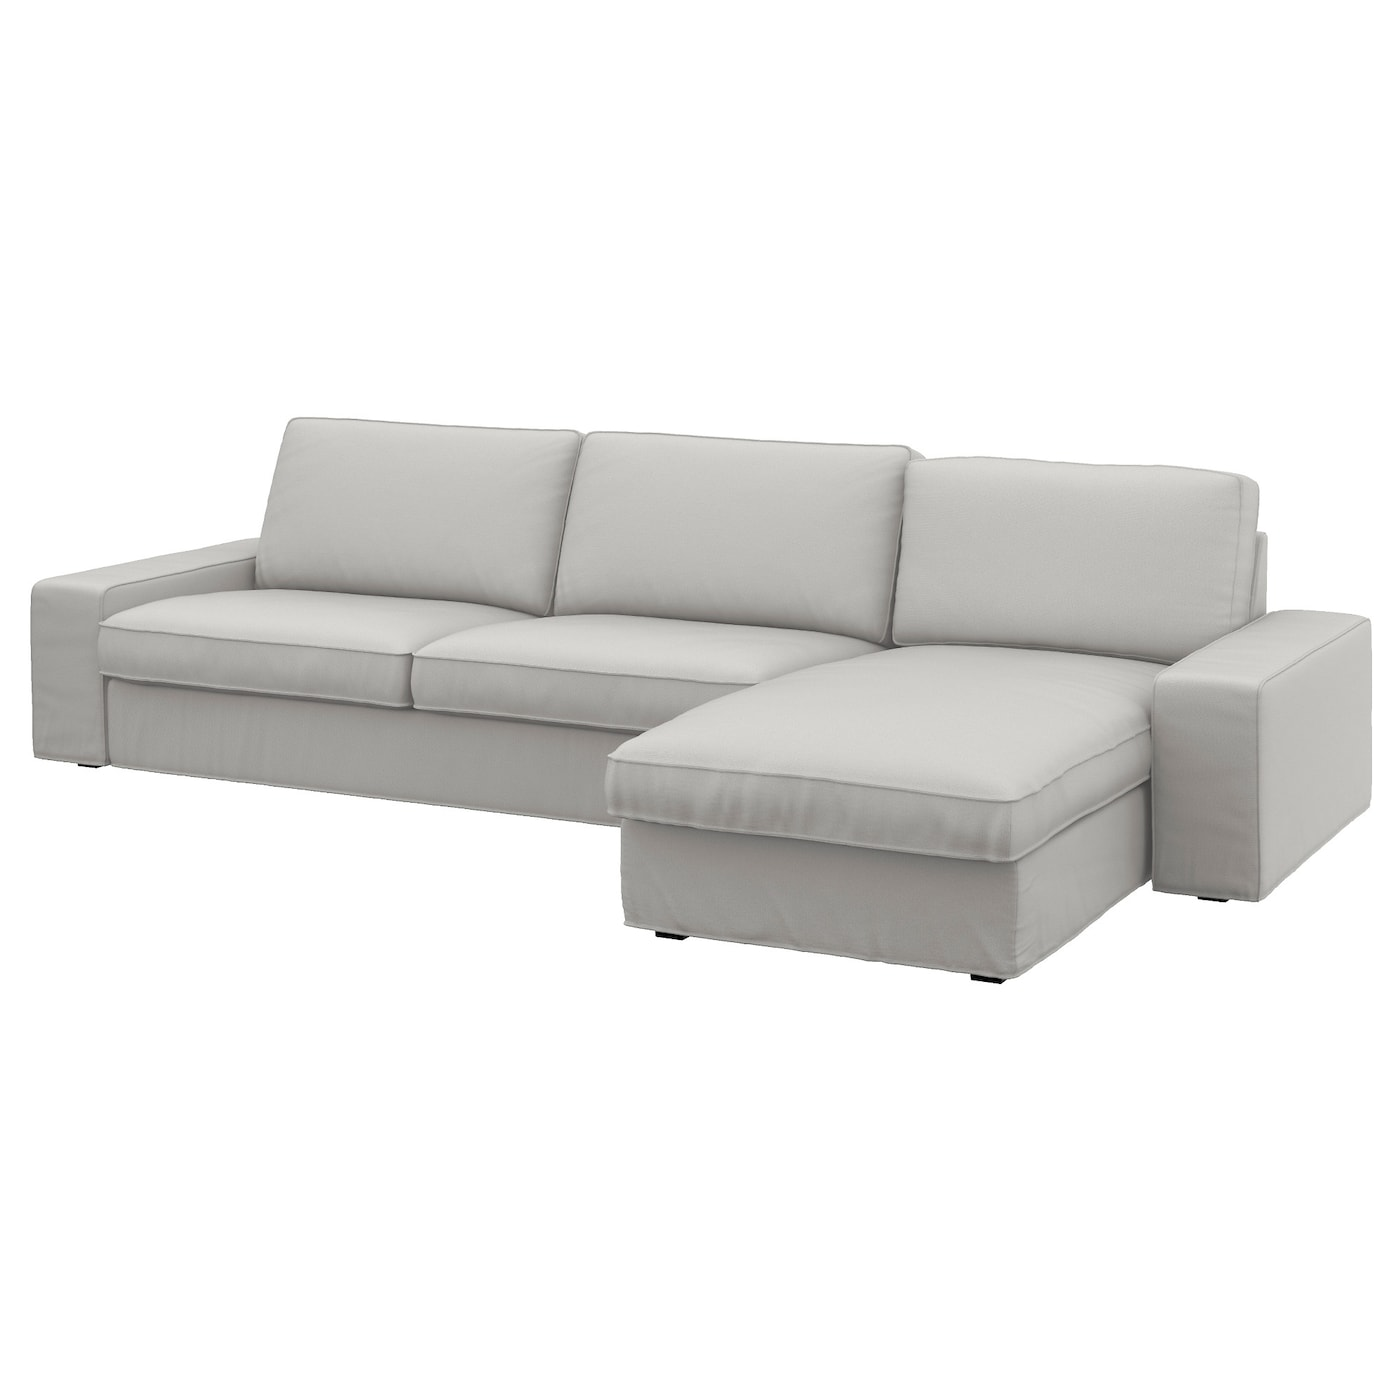 kivik three seat sofa and chaise longue ramna light grey ikea. Black Bedroom Furniture Sets. Home Design Ideas